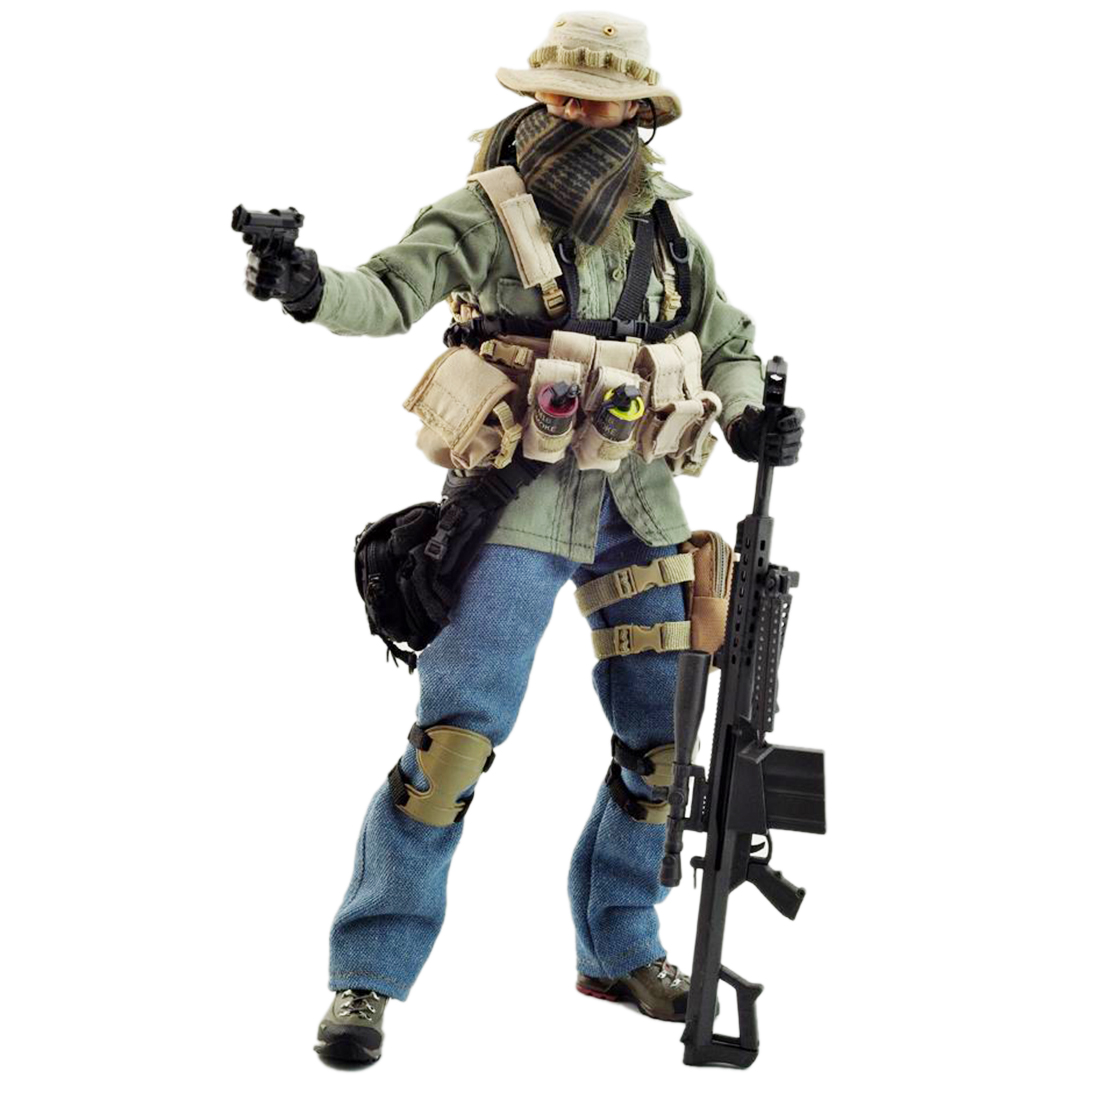 VeryHot Soldier Model Suit PMC Sniper Uniform Equipment for 1/6 12 Inch Soldier Model (Body and Head Not Included )